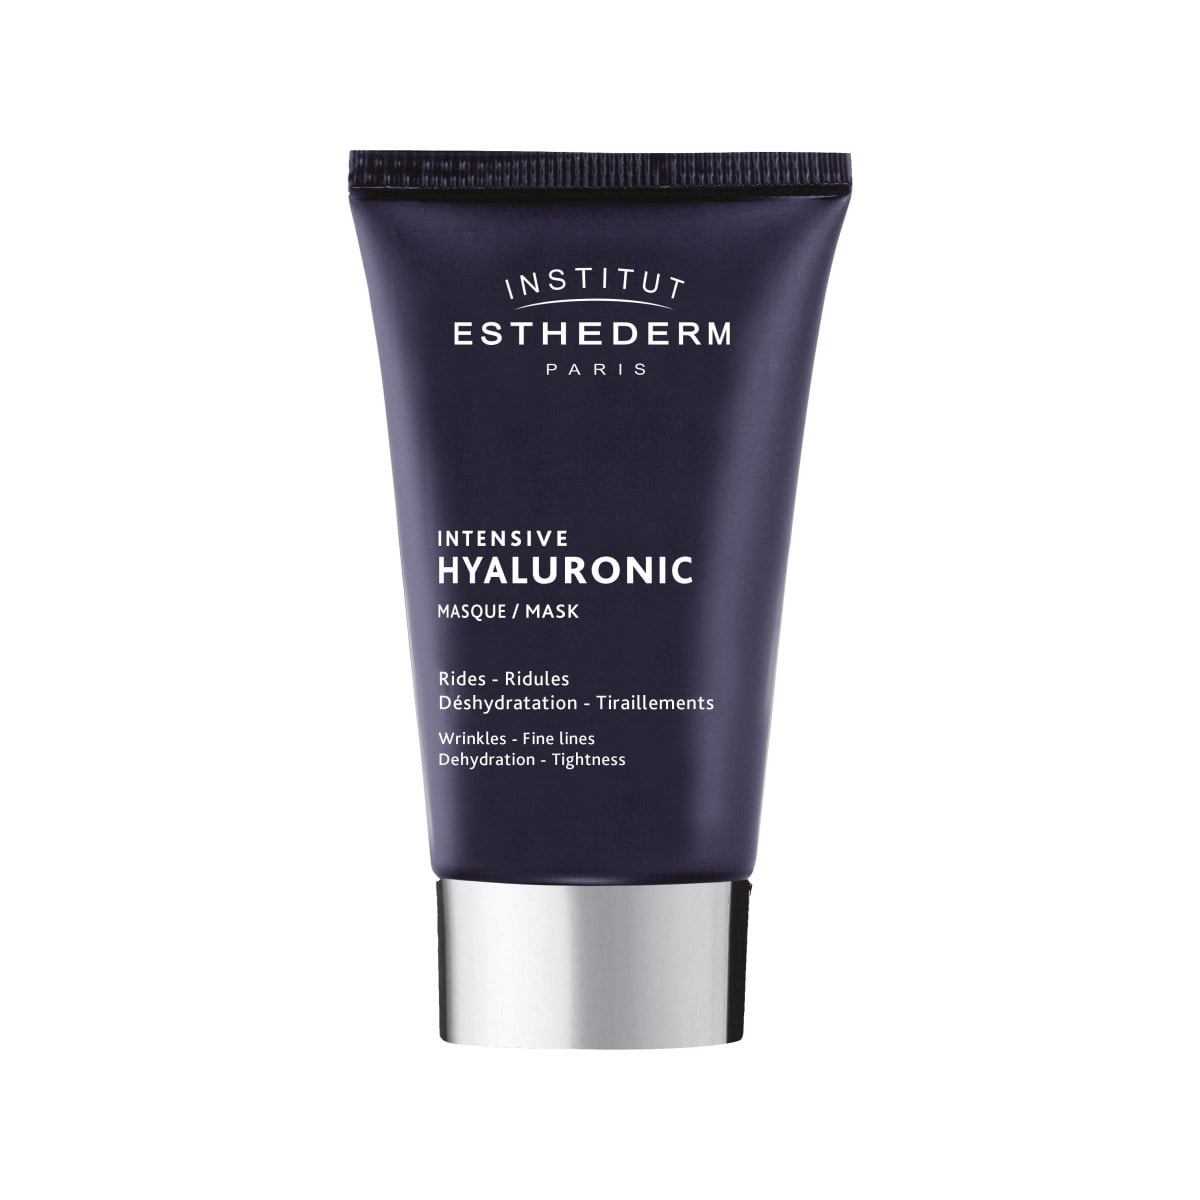 Masque Hyaluronic intensive